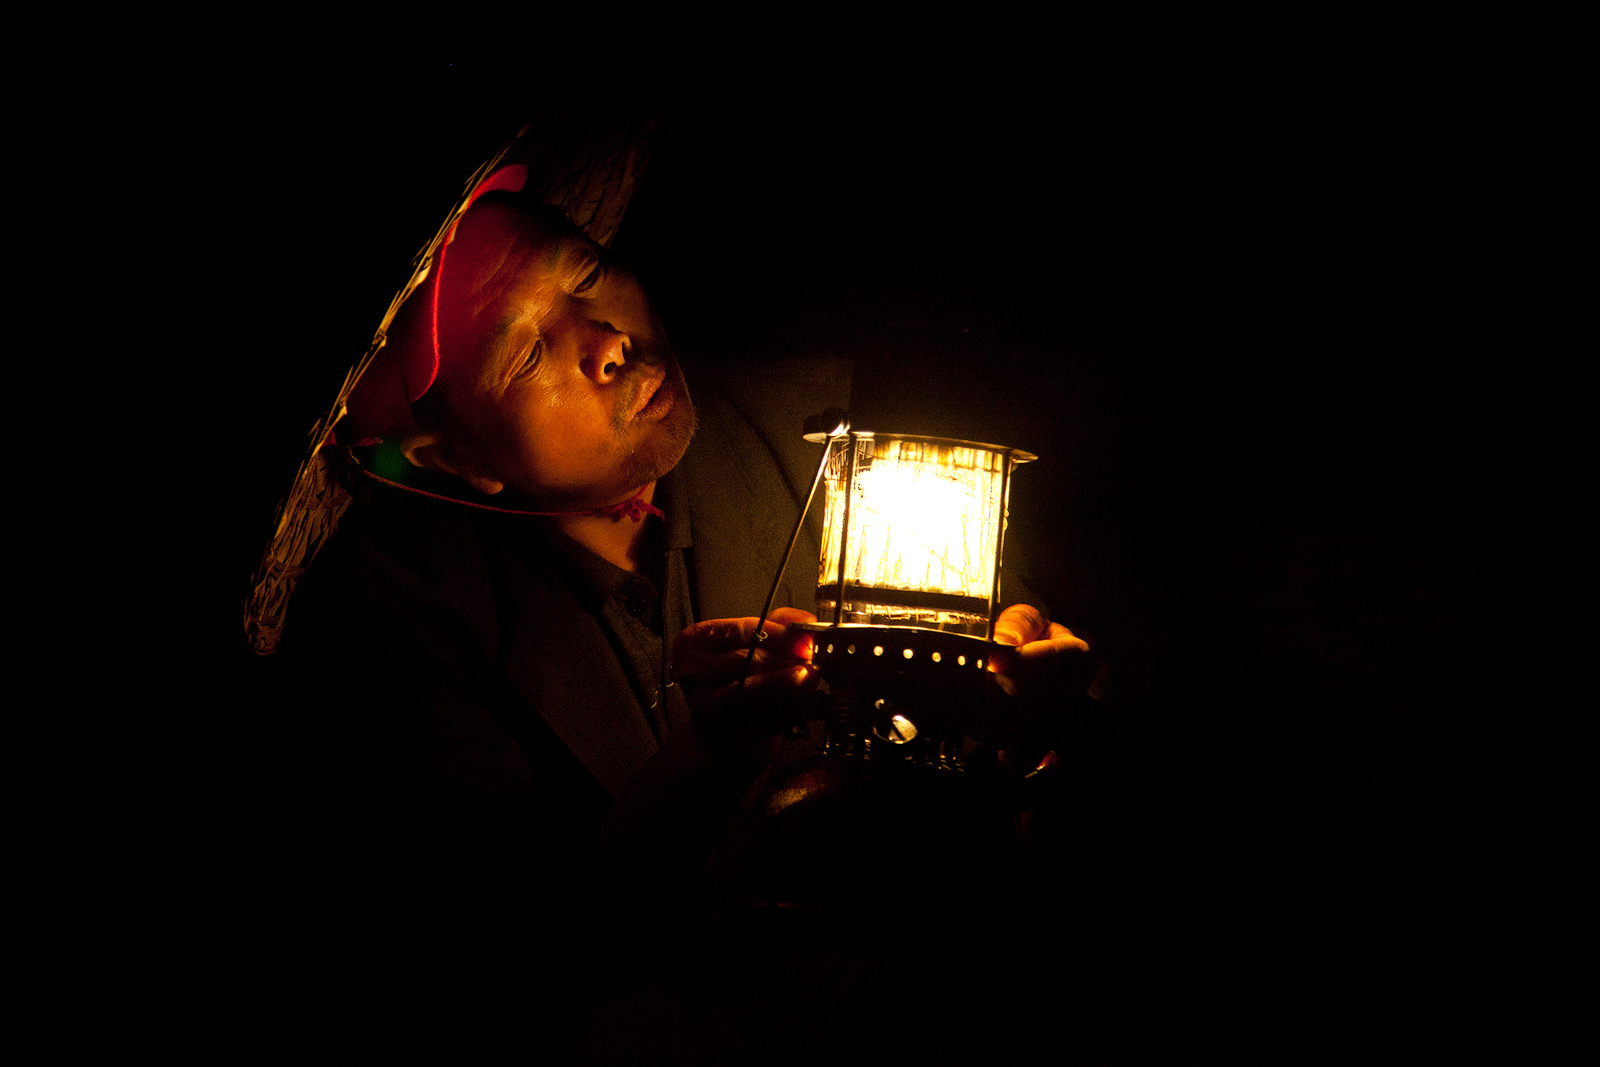 Close-up of Chinese fisherman wearing a hat and holding a lantern